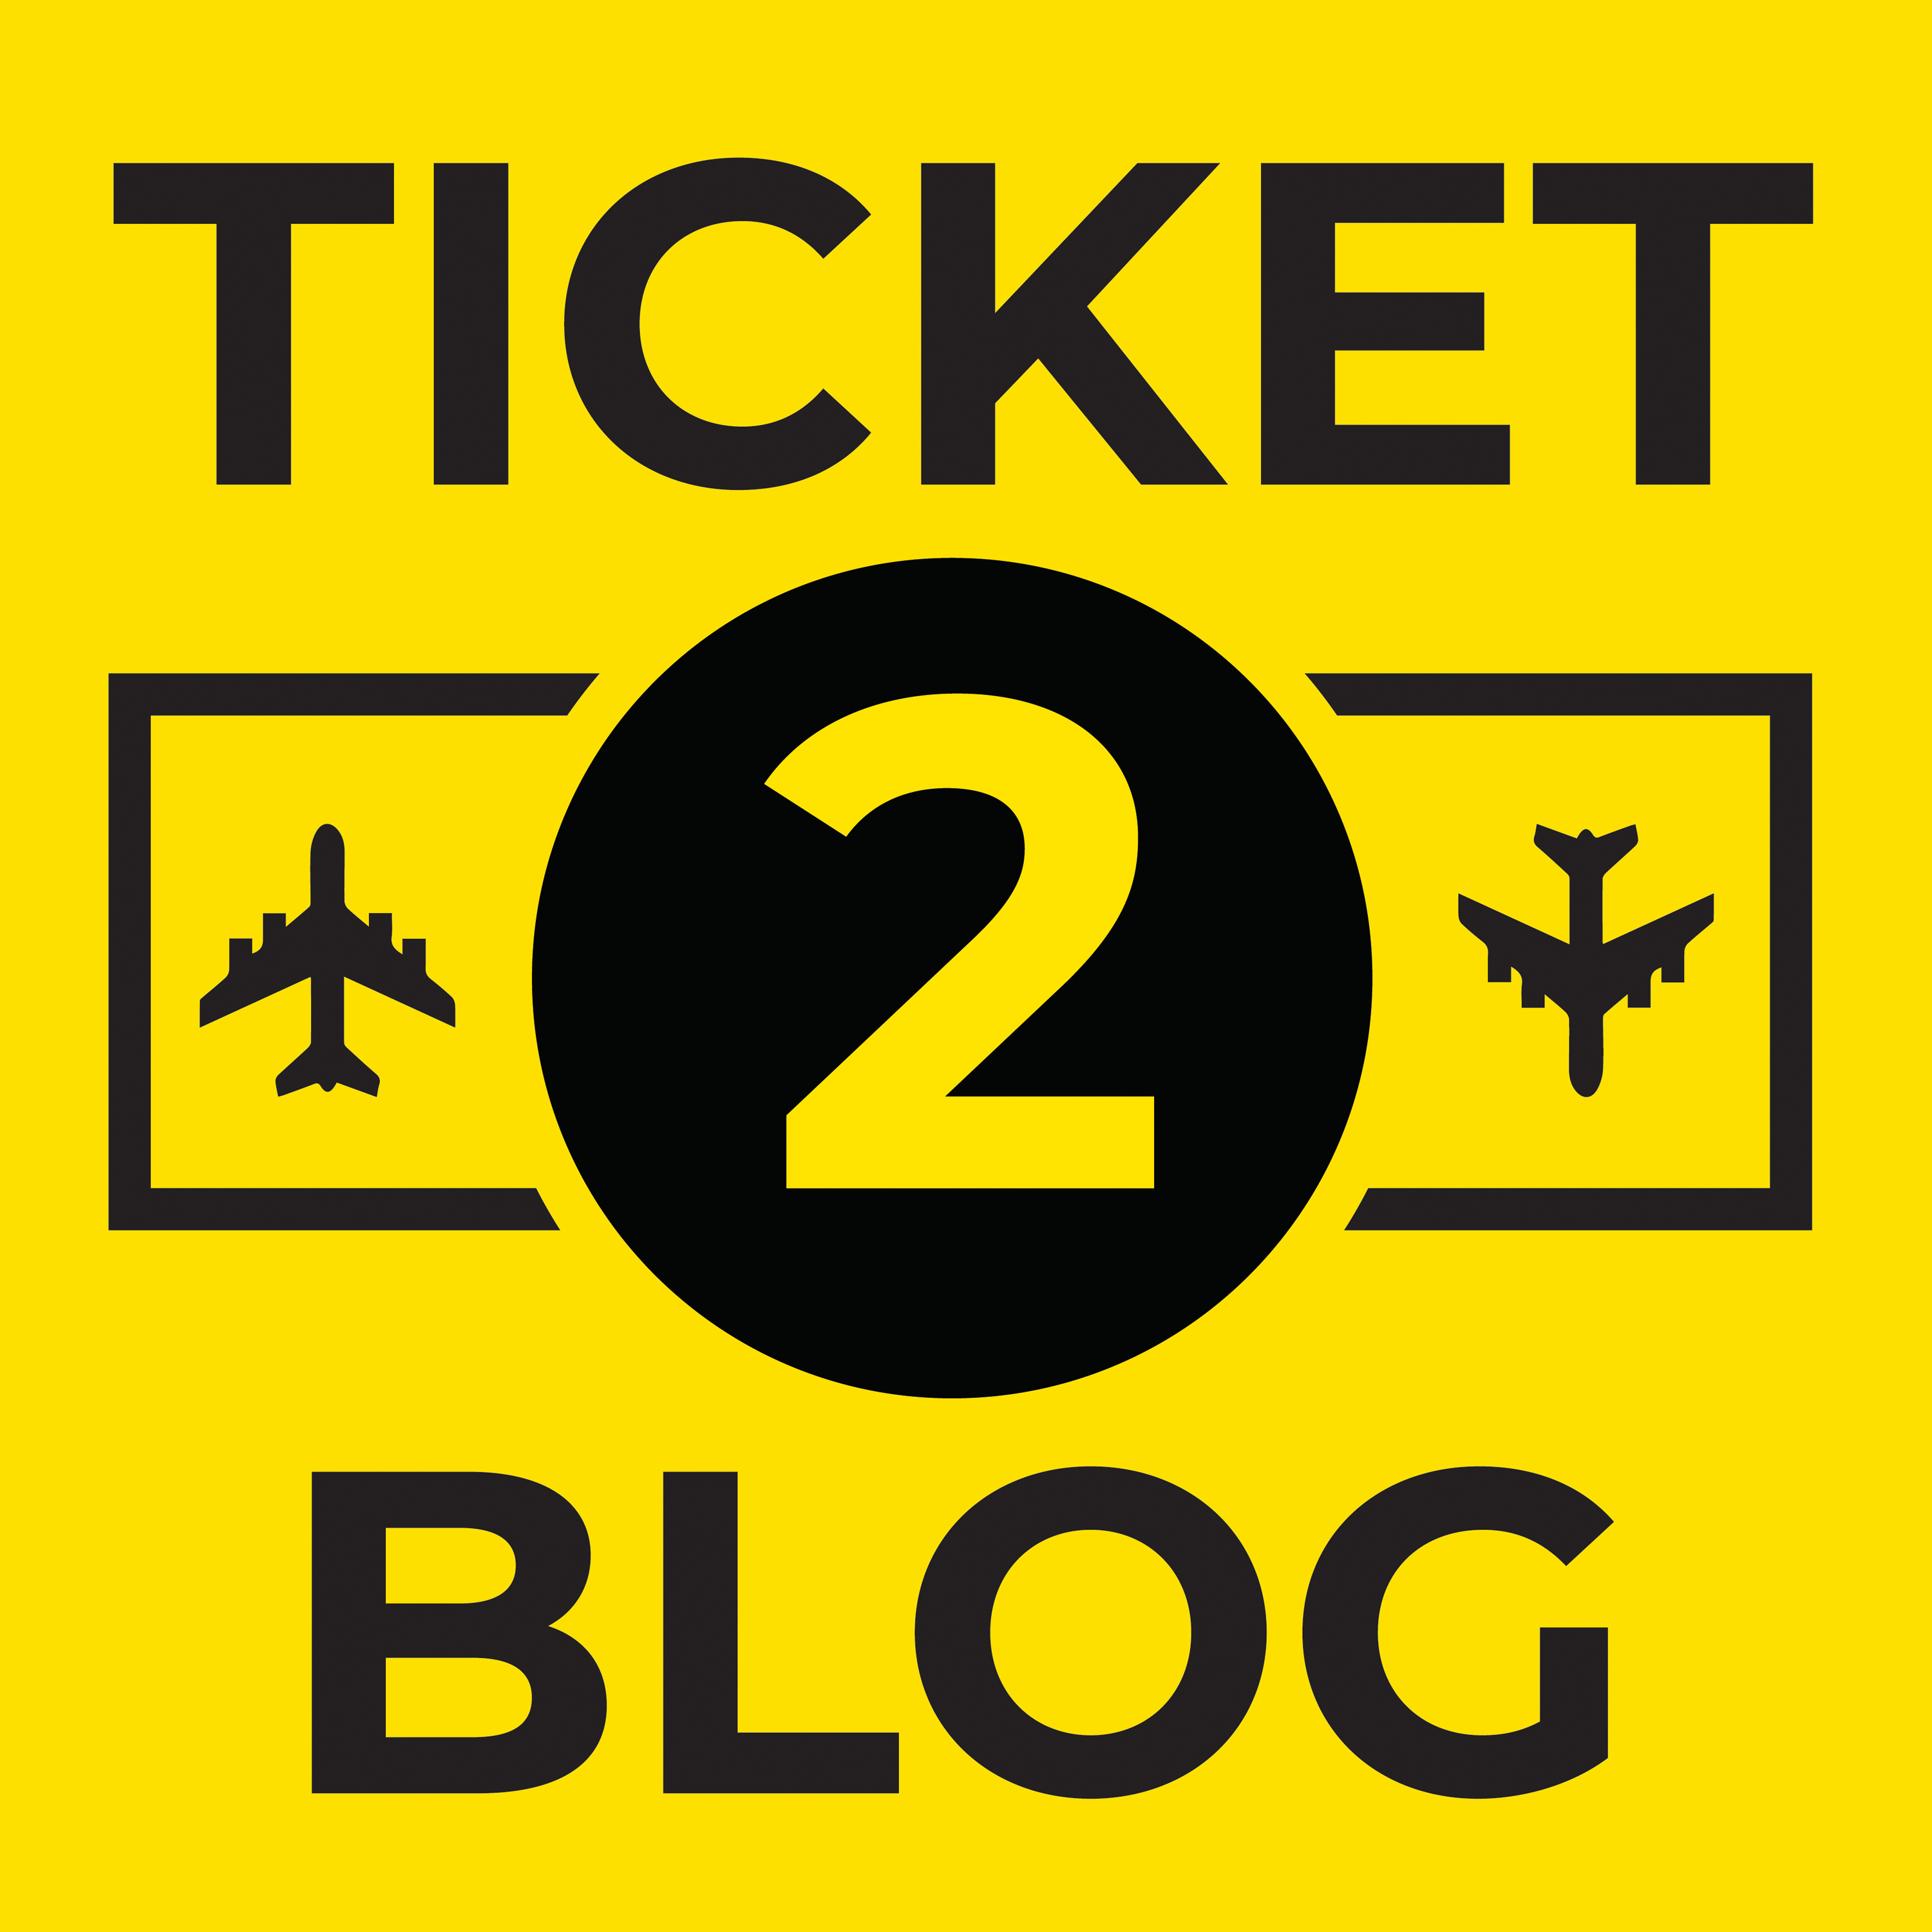 Ticket 2 Blog